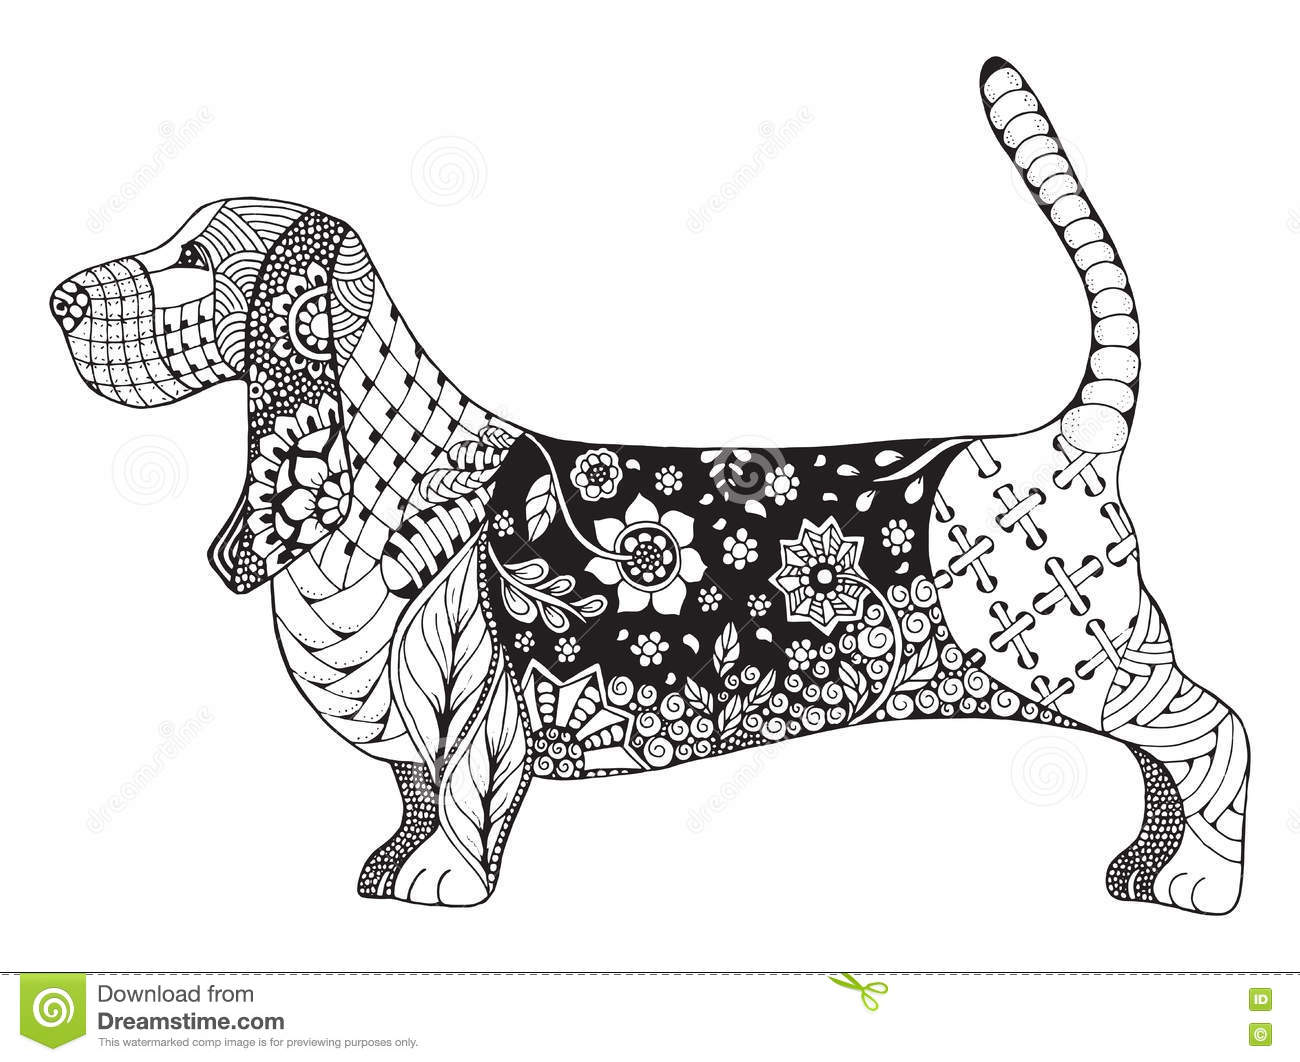 Basset Hound Coloring Pages - Coloring Pages For All Ages ... | 1062x1300